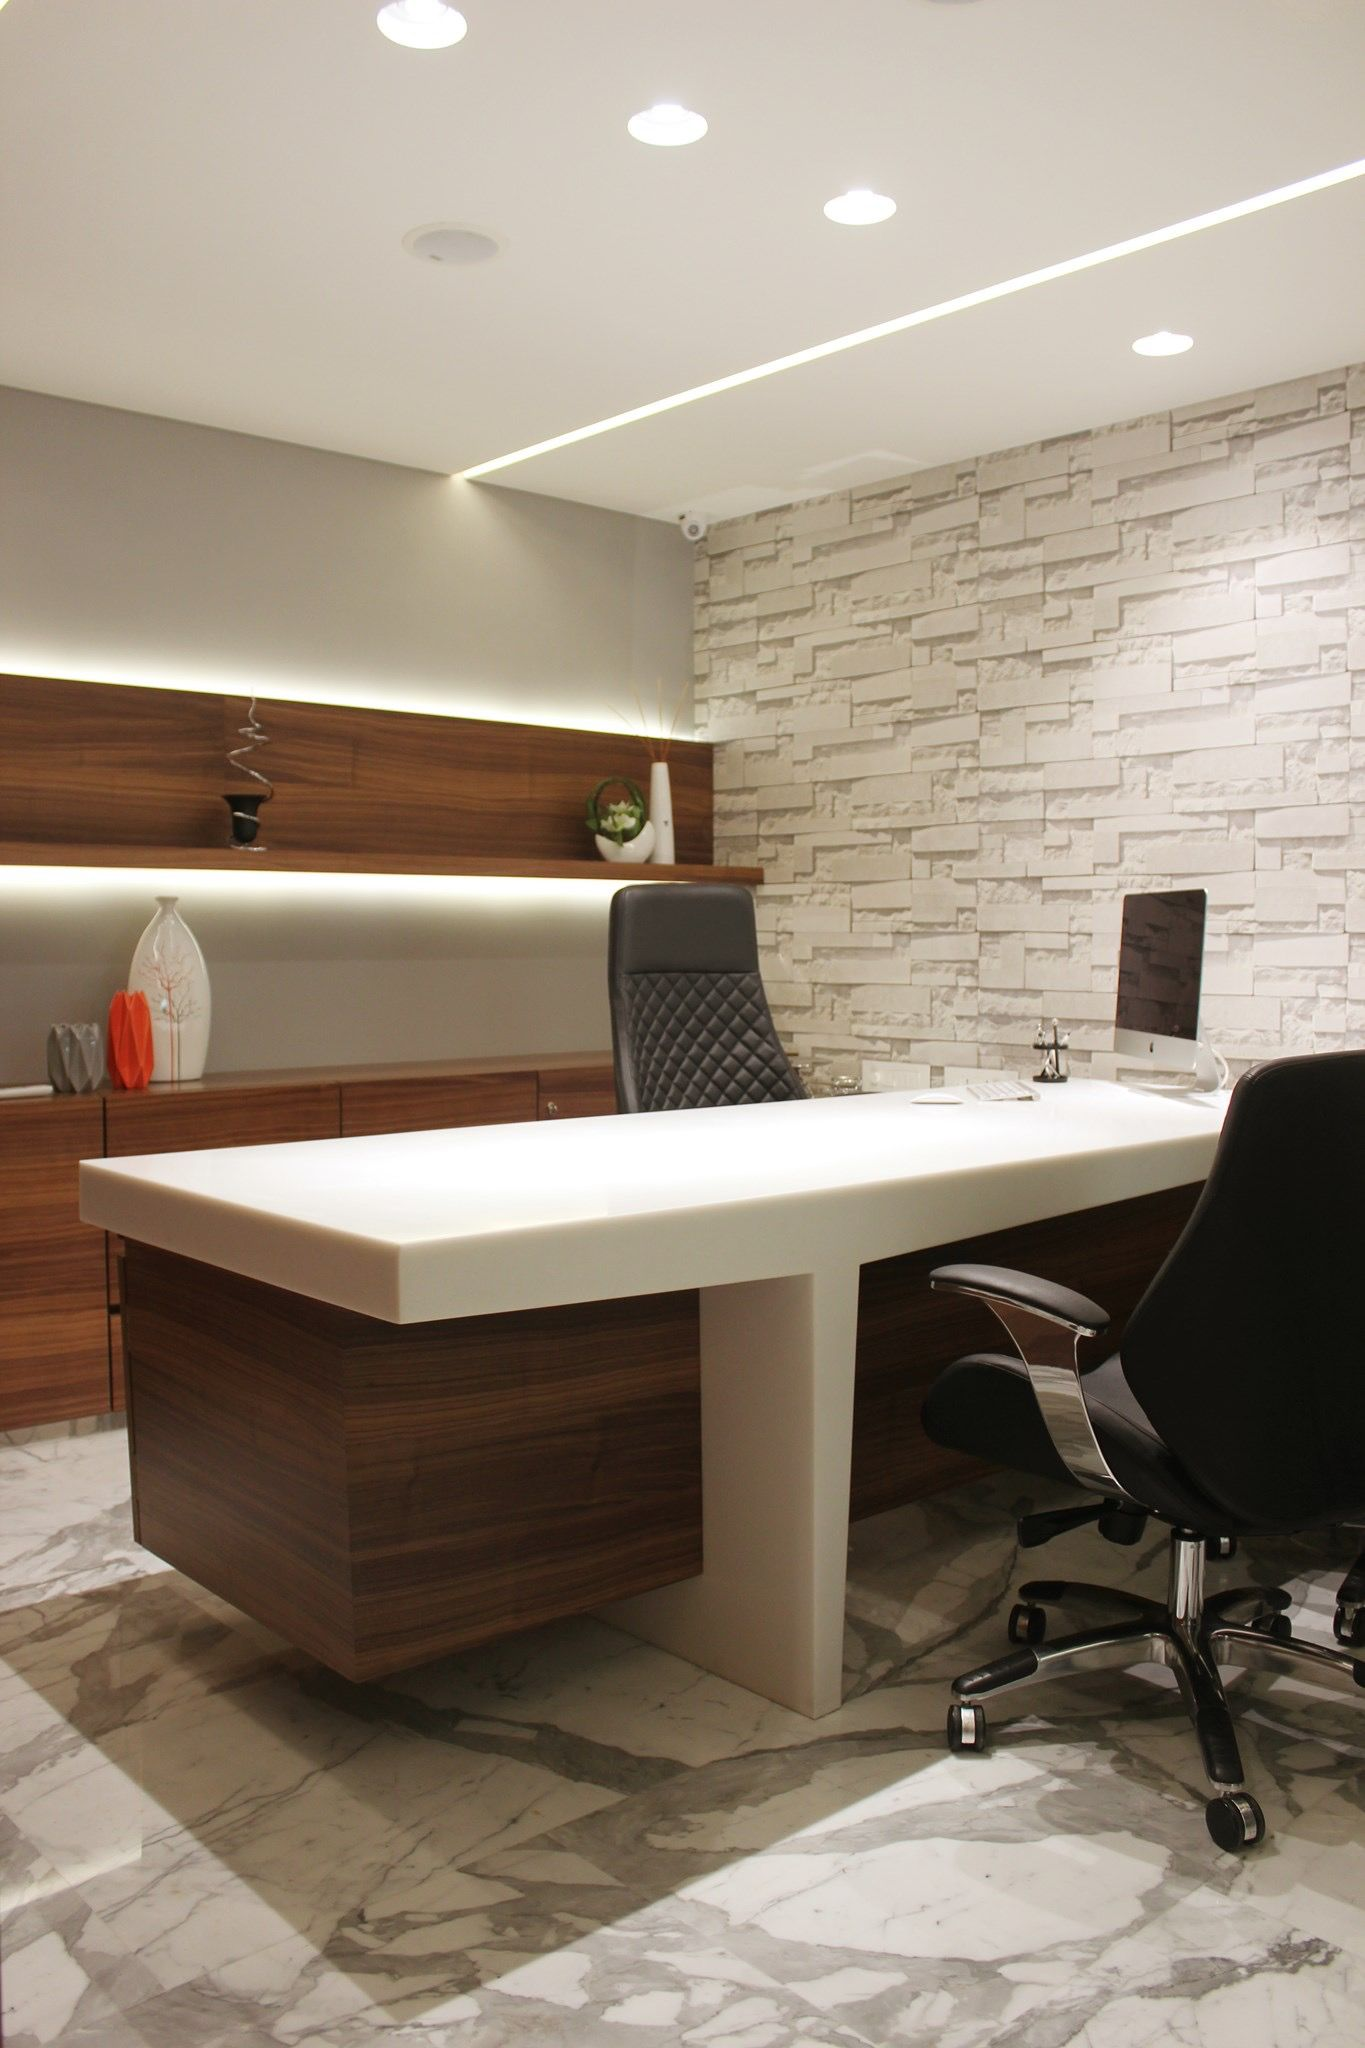 Pin By Ray On Office Space Design Office Cabin Design Office Ceiling Design Office Interior Design